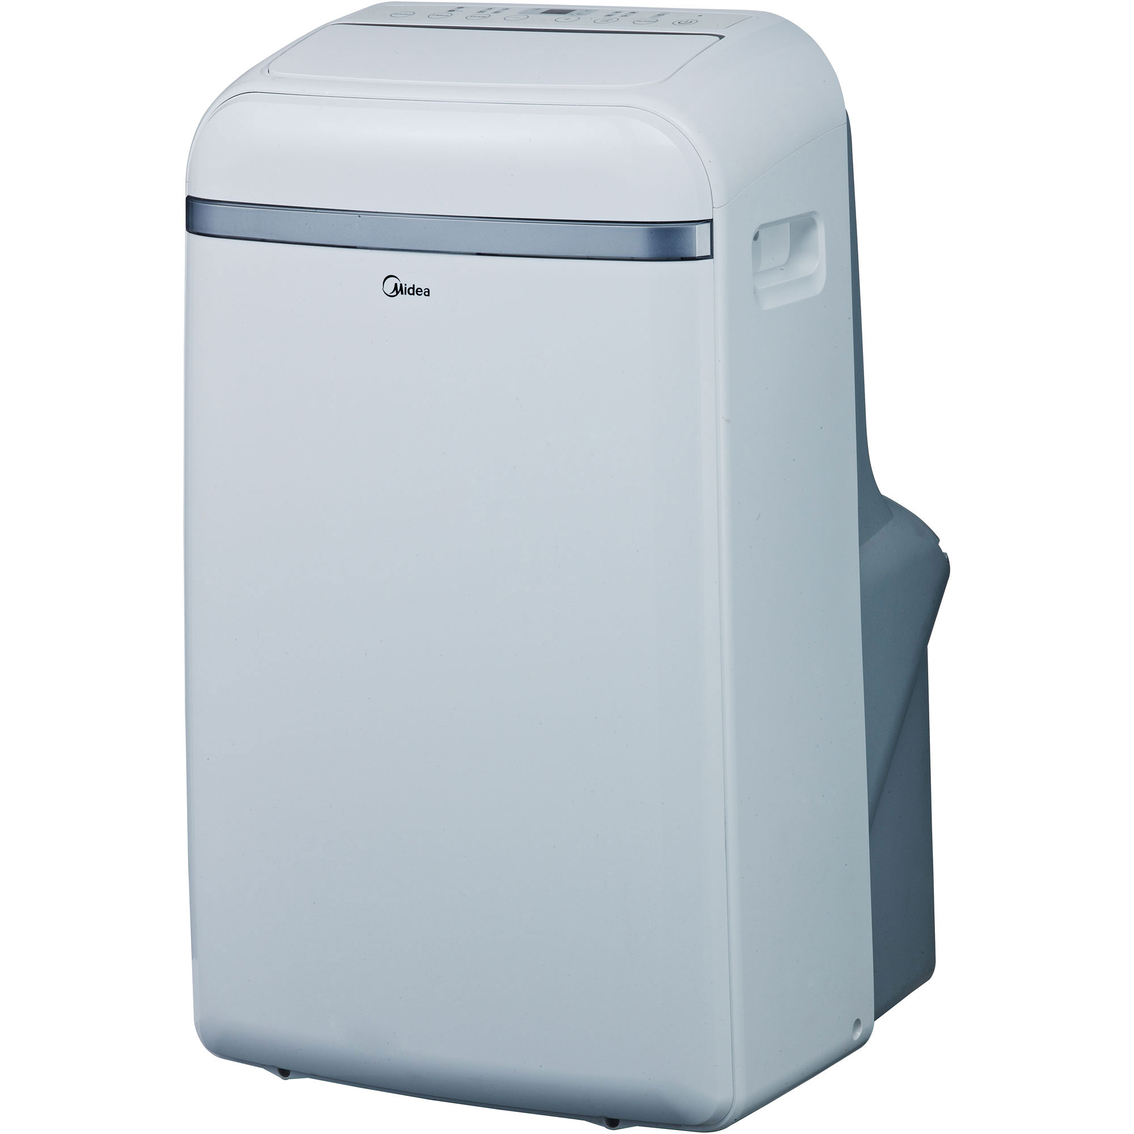 Air Conditioner Portable Air Conditioners Home & Appliances Shop #2F3E49